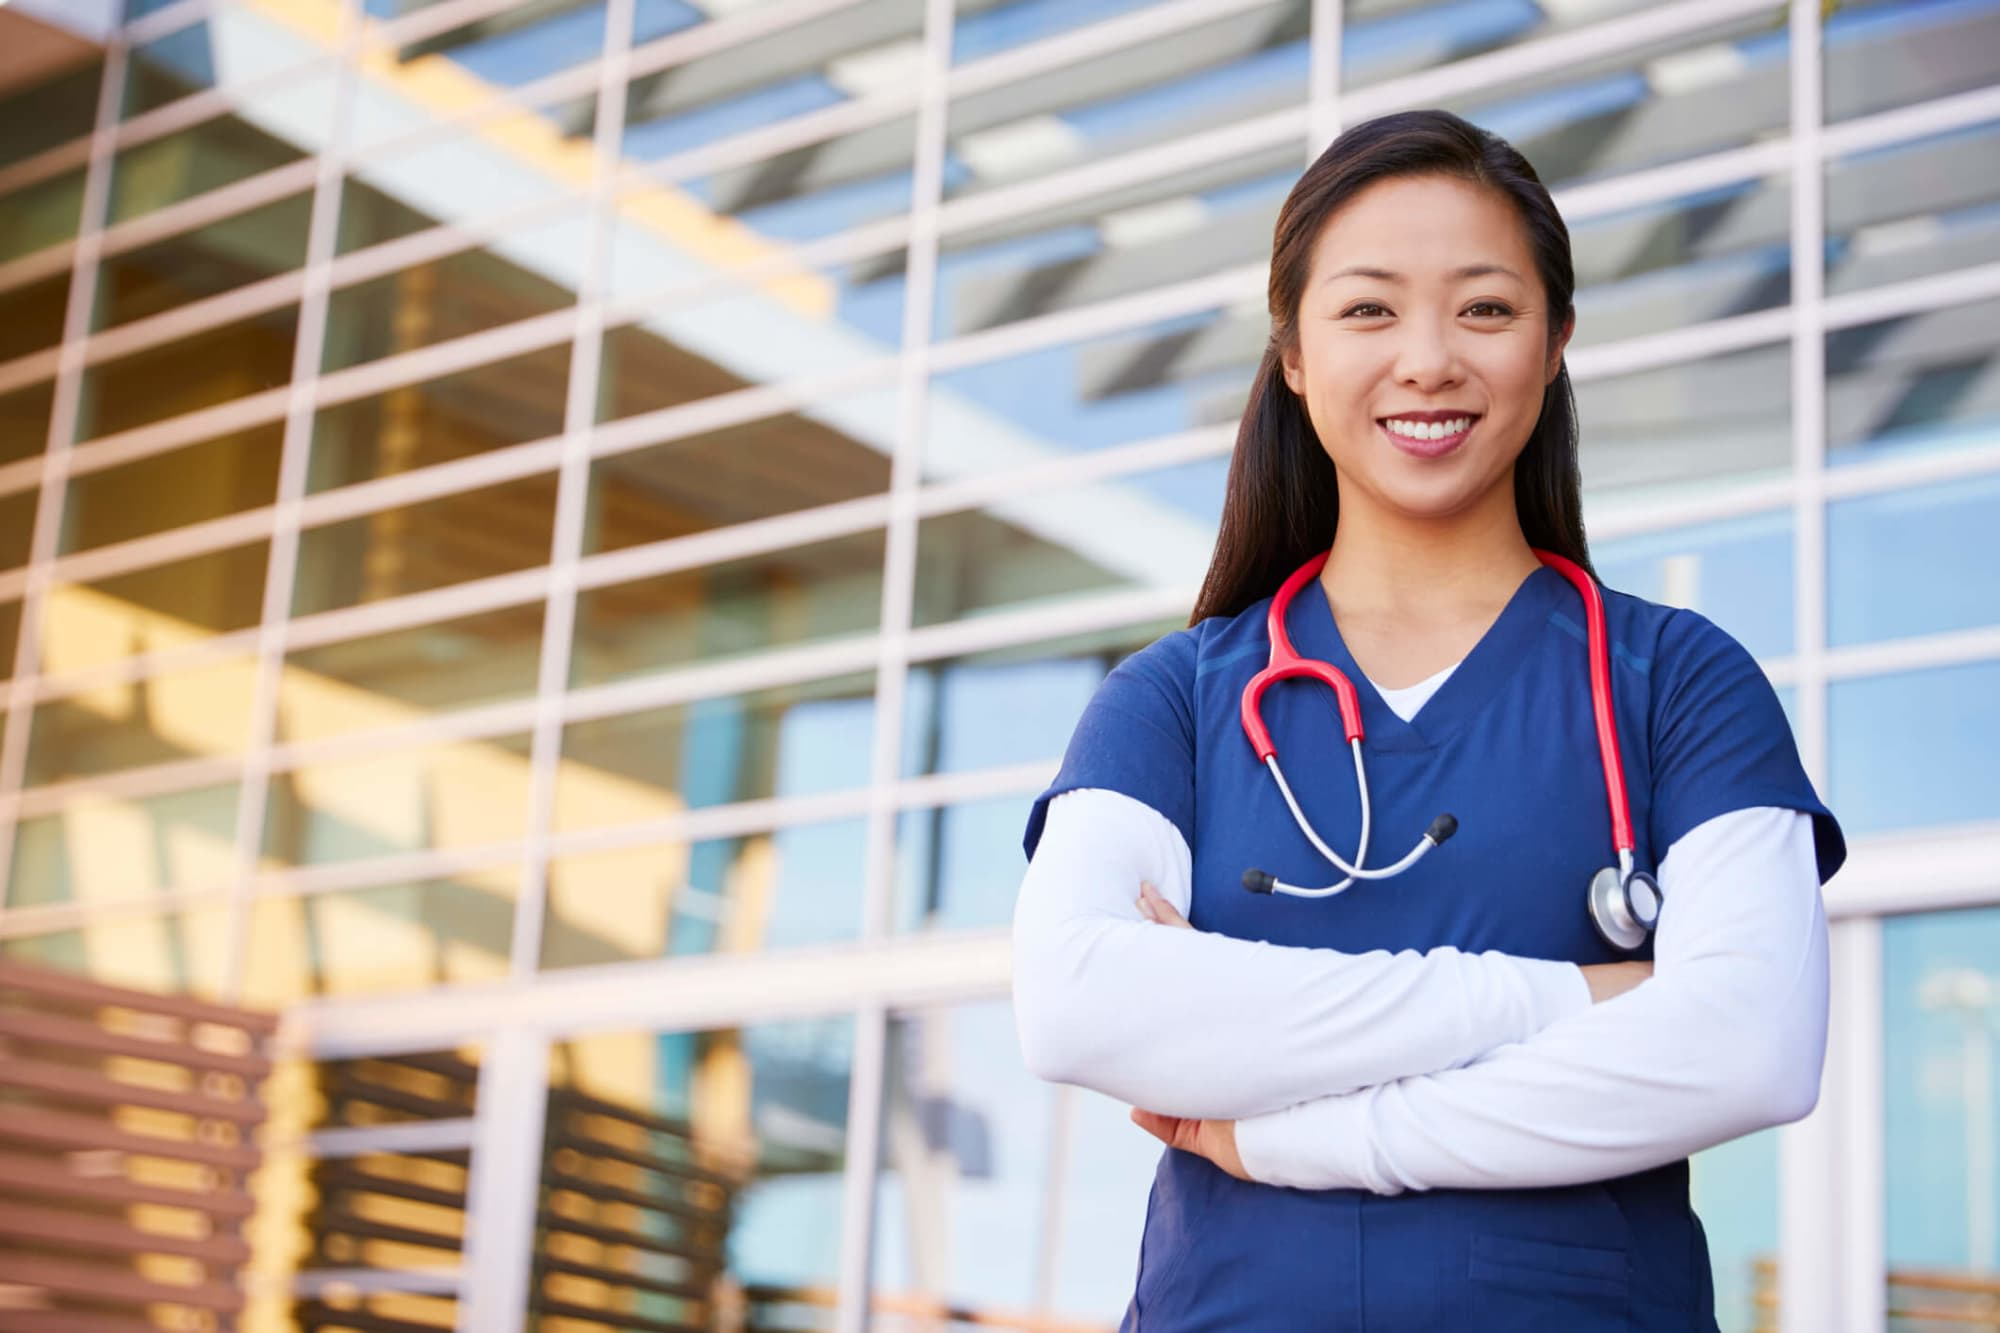 How to Become a Charge Nurse